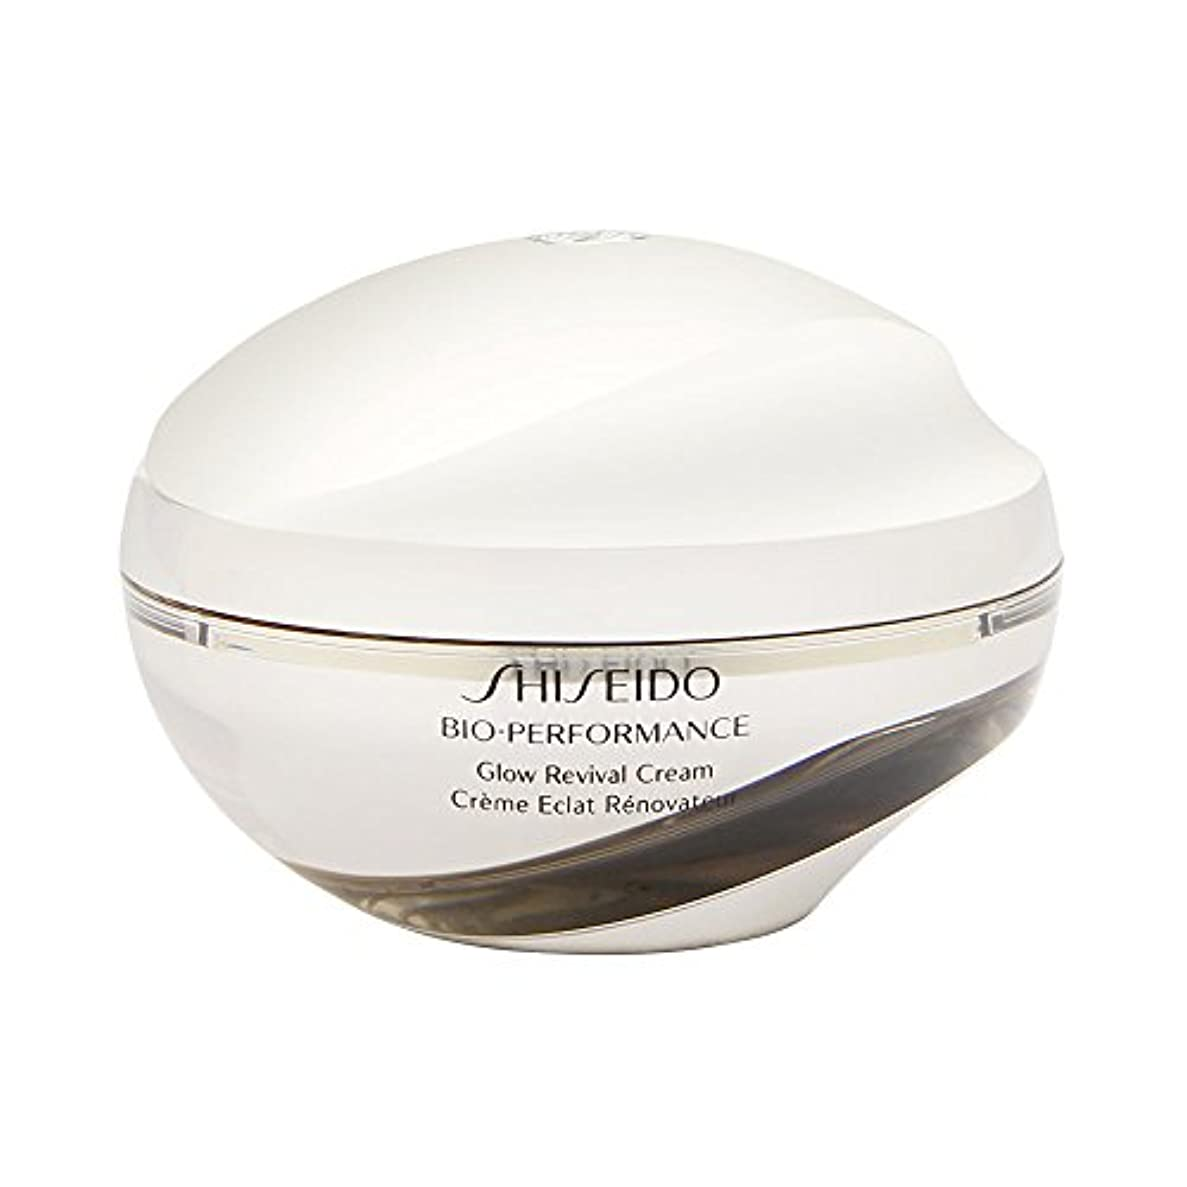 鉱石認証いっぱいShiseido Bio Performance Glow Revival Cream 75 ml / 2.6 oz by Shiseido